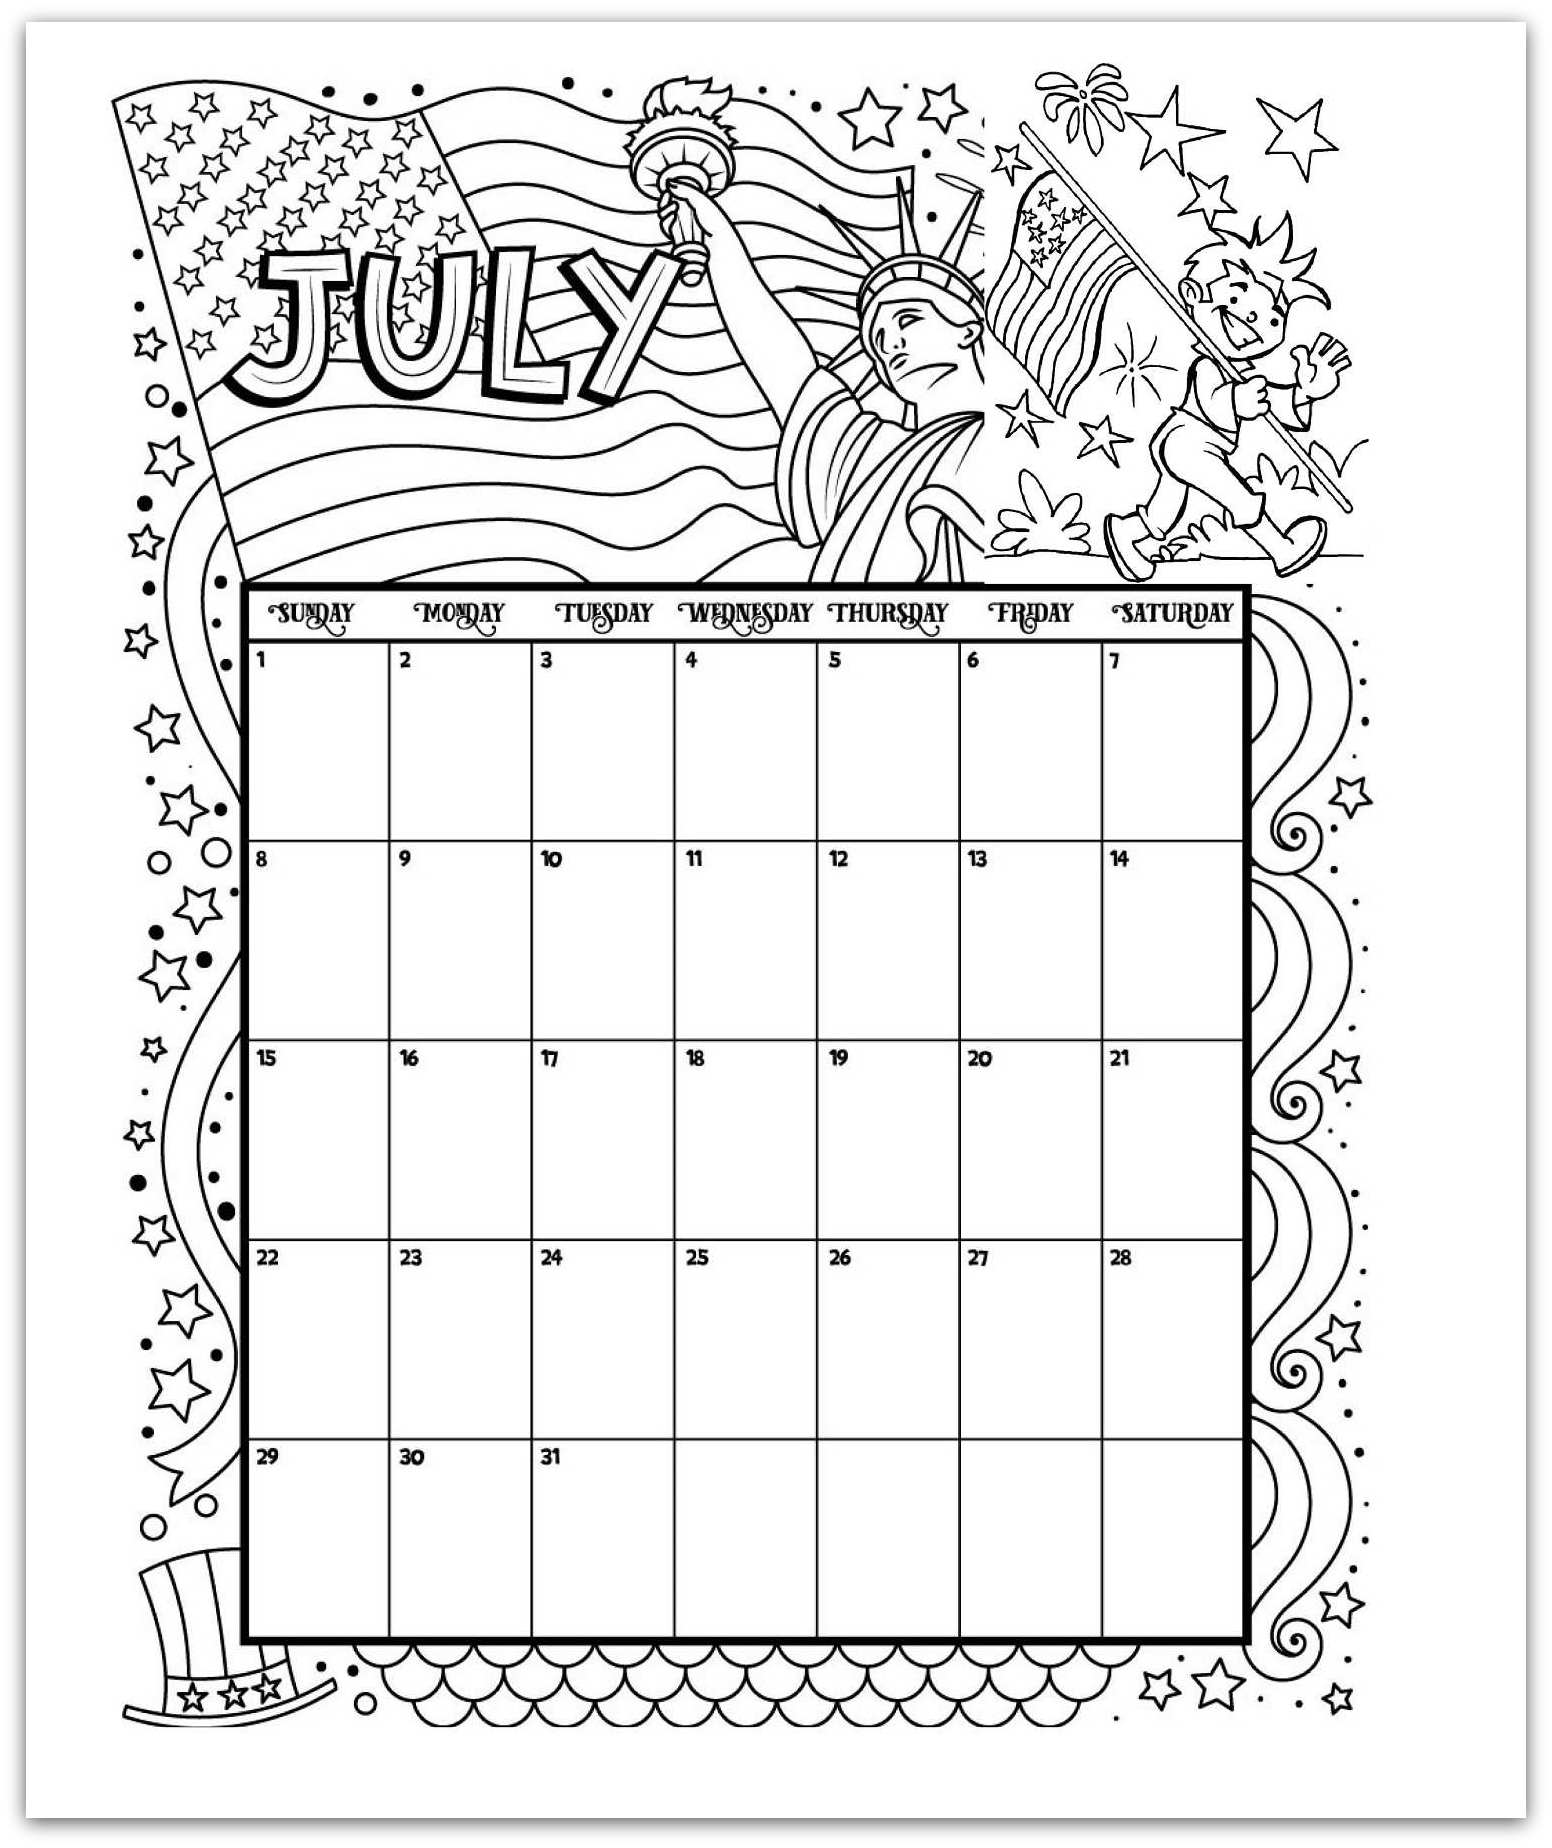 July 2019 Coloring Page Printable Calendar